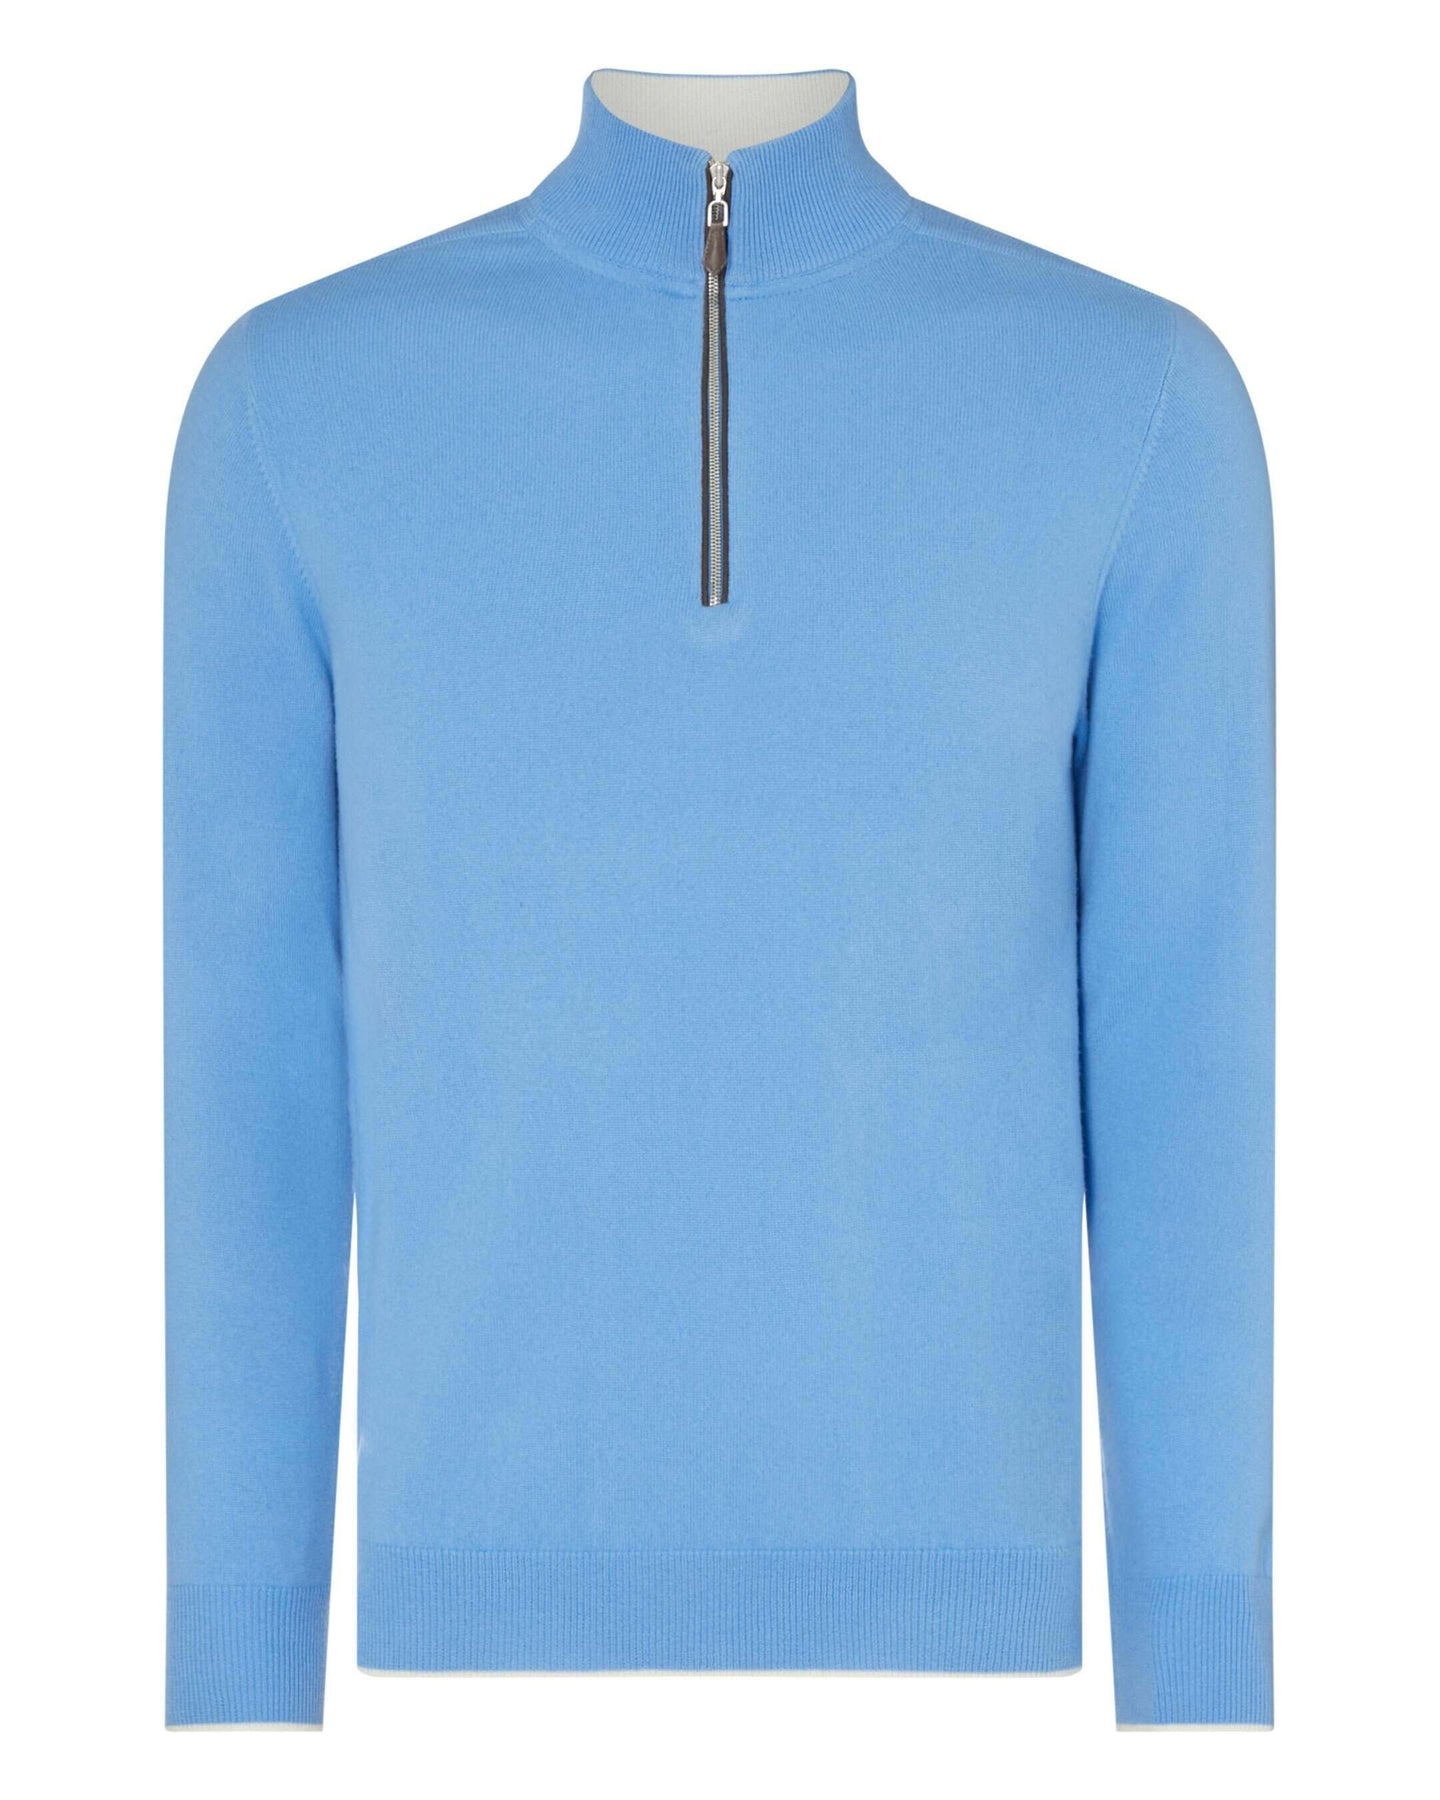 The Carnaby Half Zip Cashmere Sweater Atlas Blue New Ivory White 2